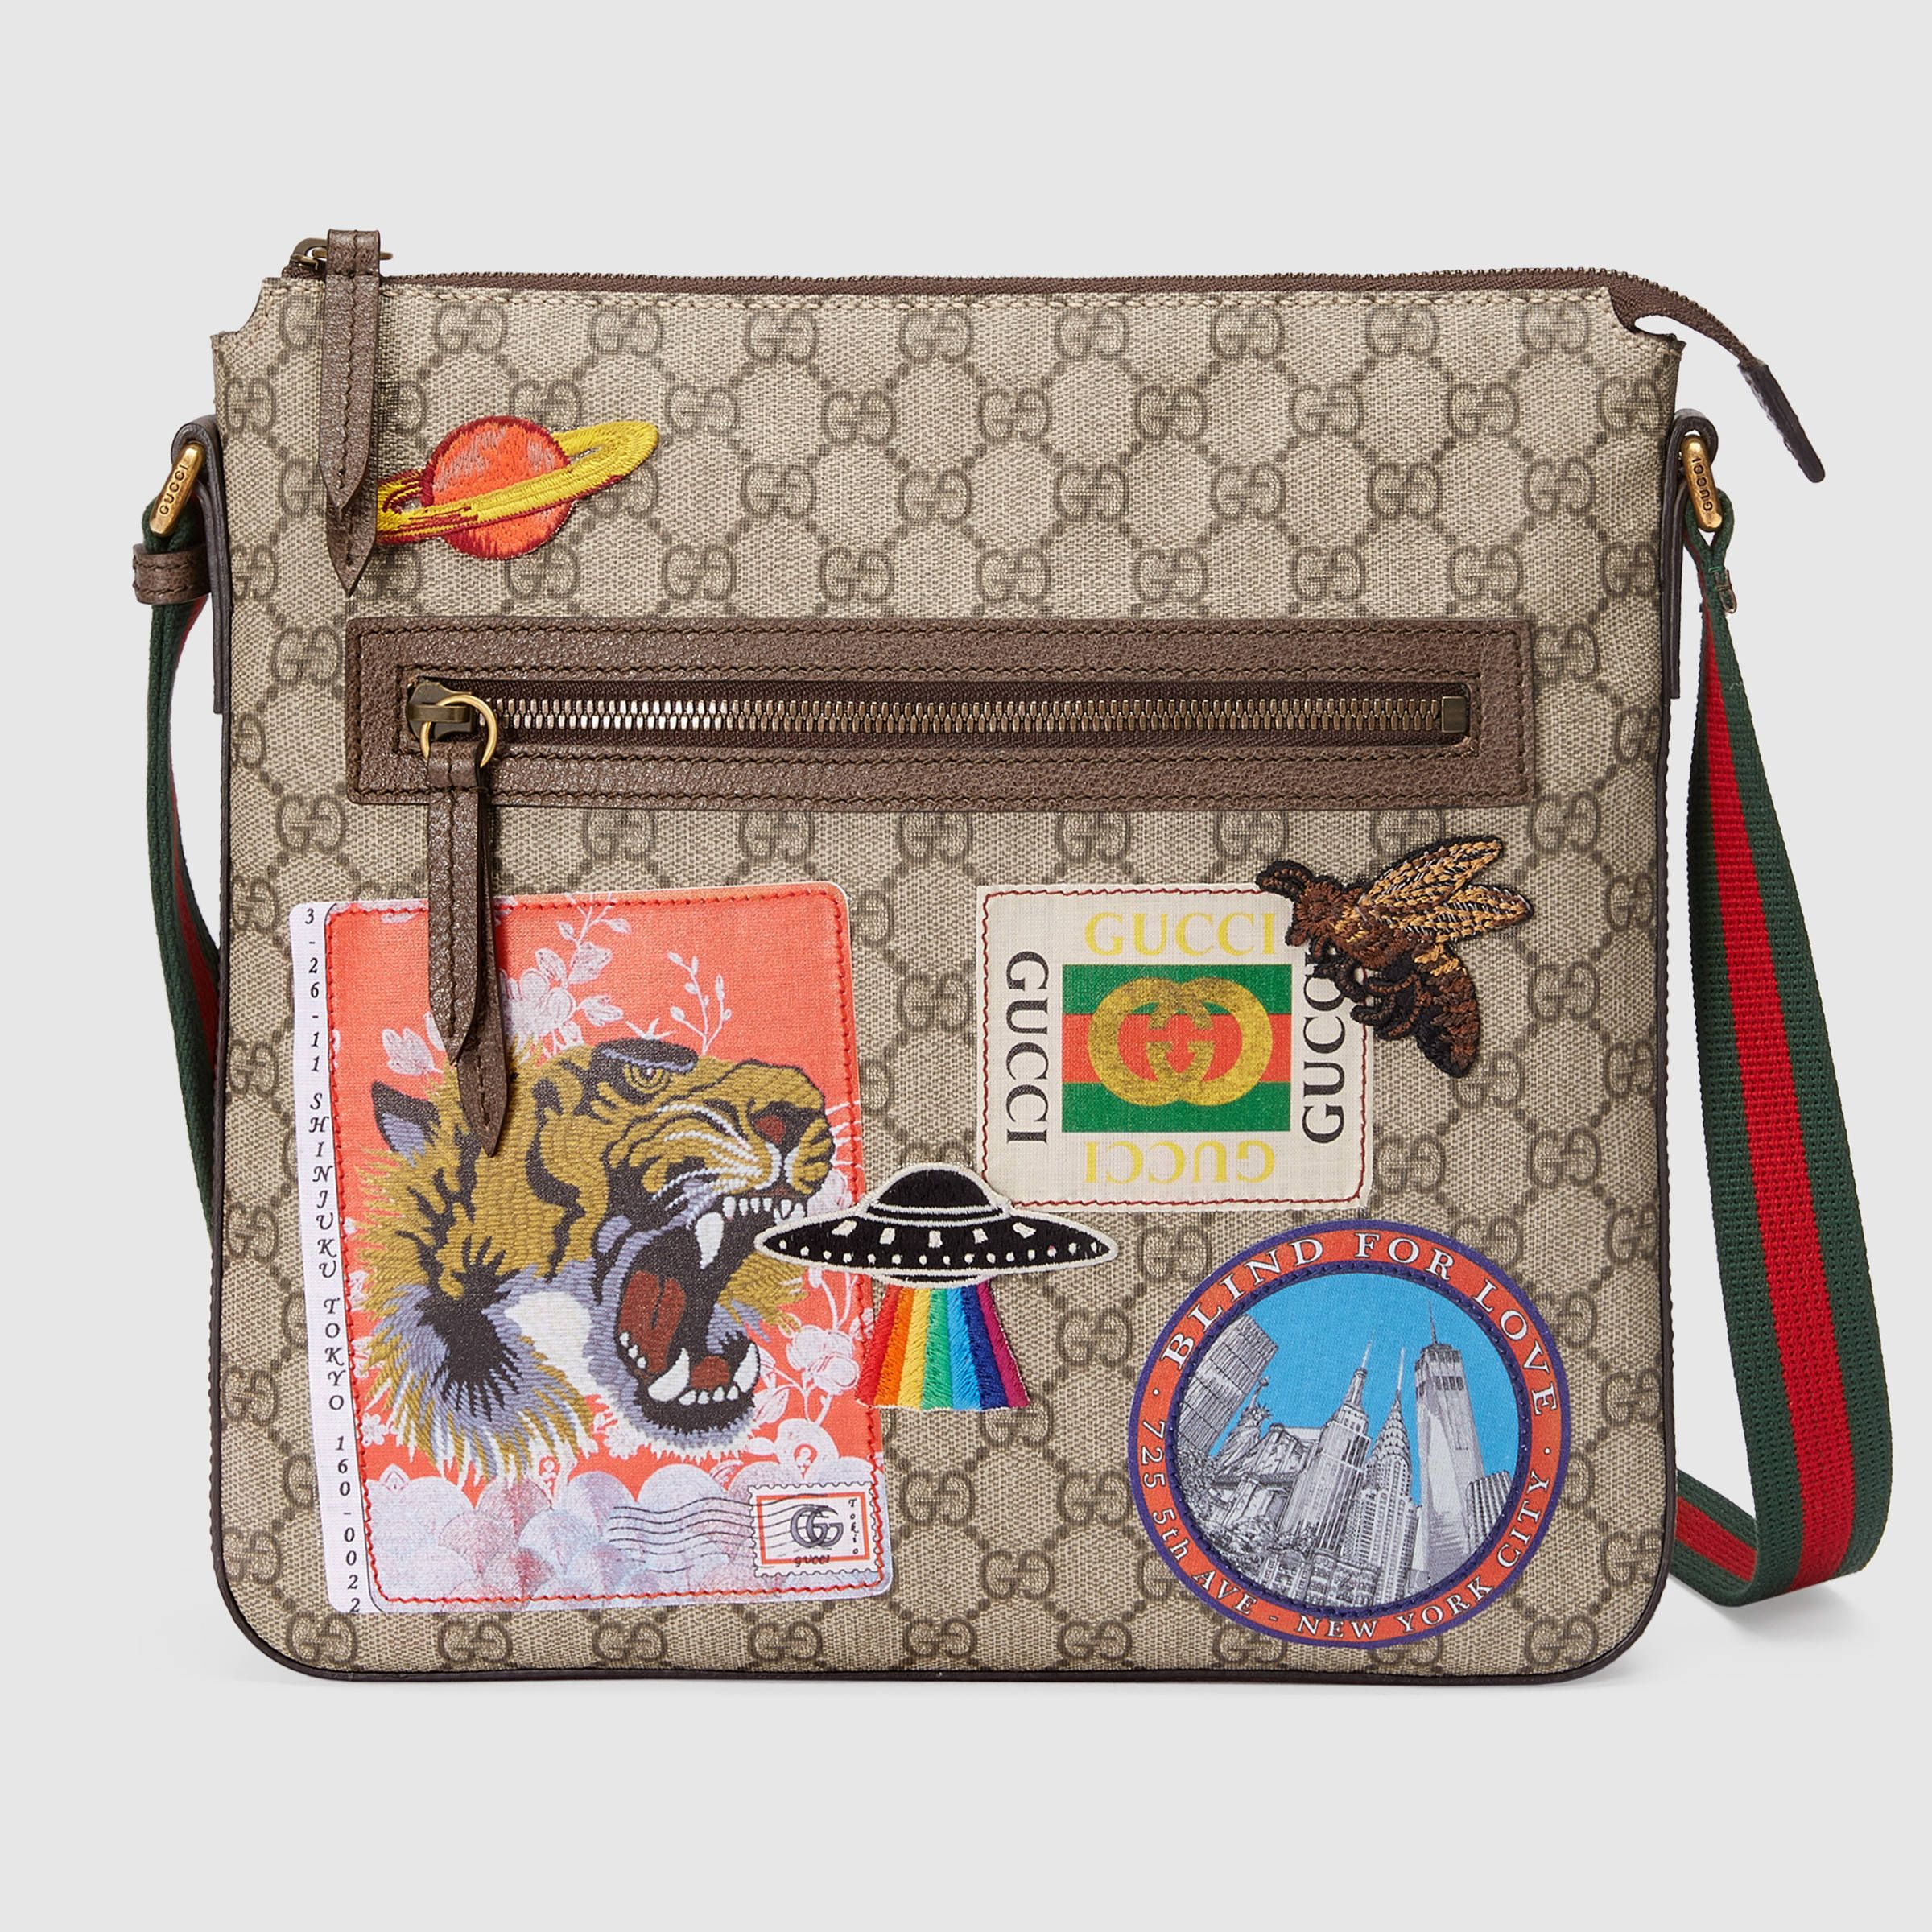 862d4a9dee9e Gucci Courrier soft GG Supreme messenger in 2019 | My Style | Gucci ...